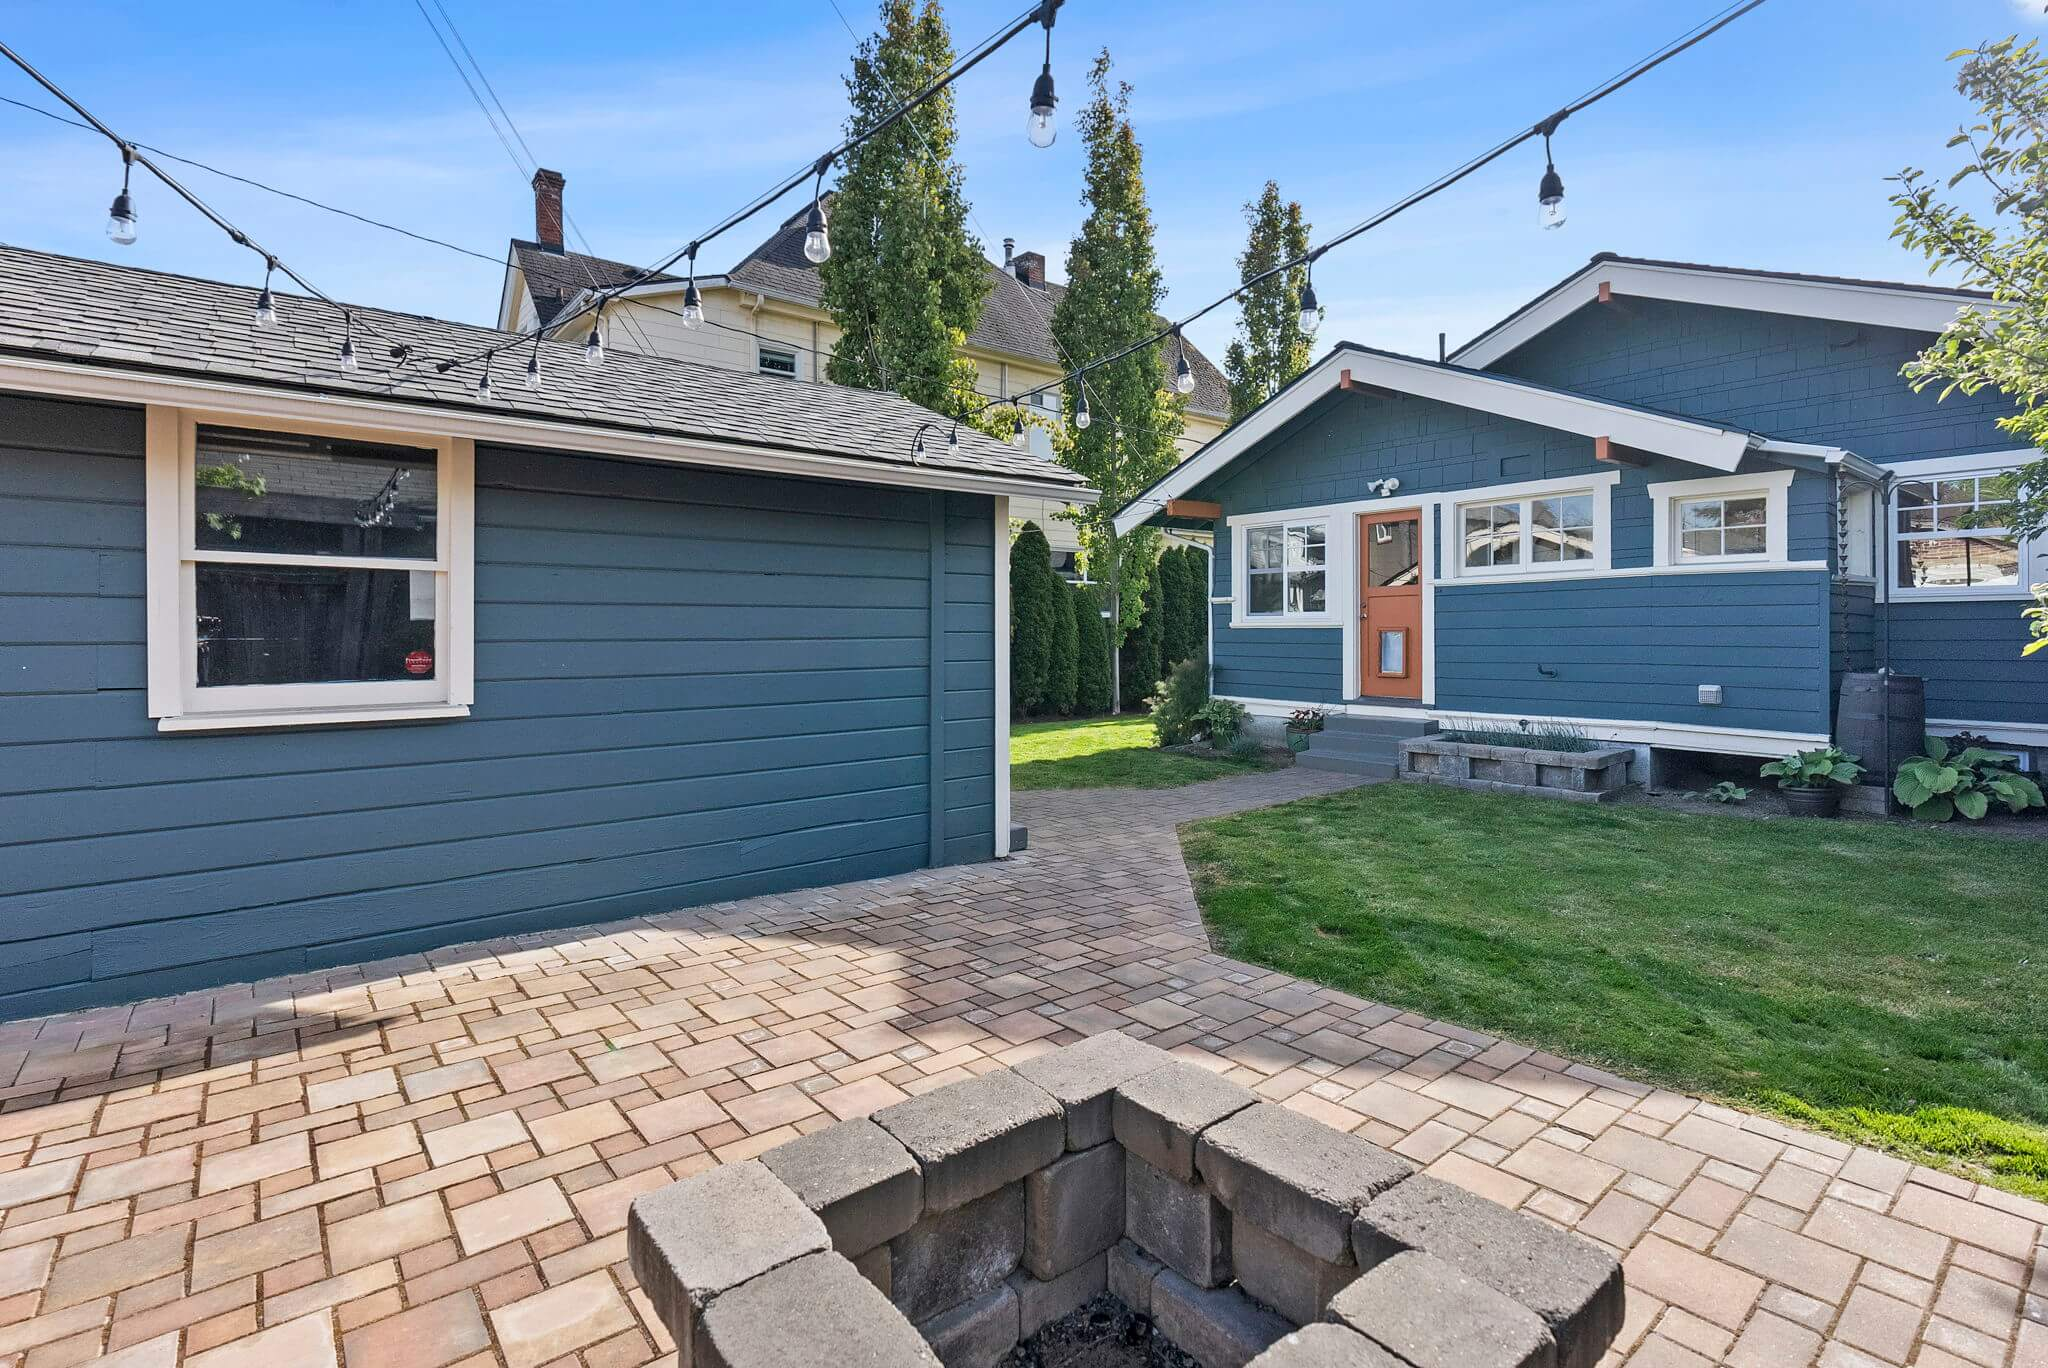 One car garage and paver stone patio with fire pit